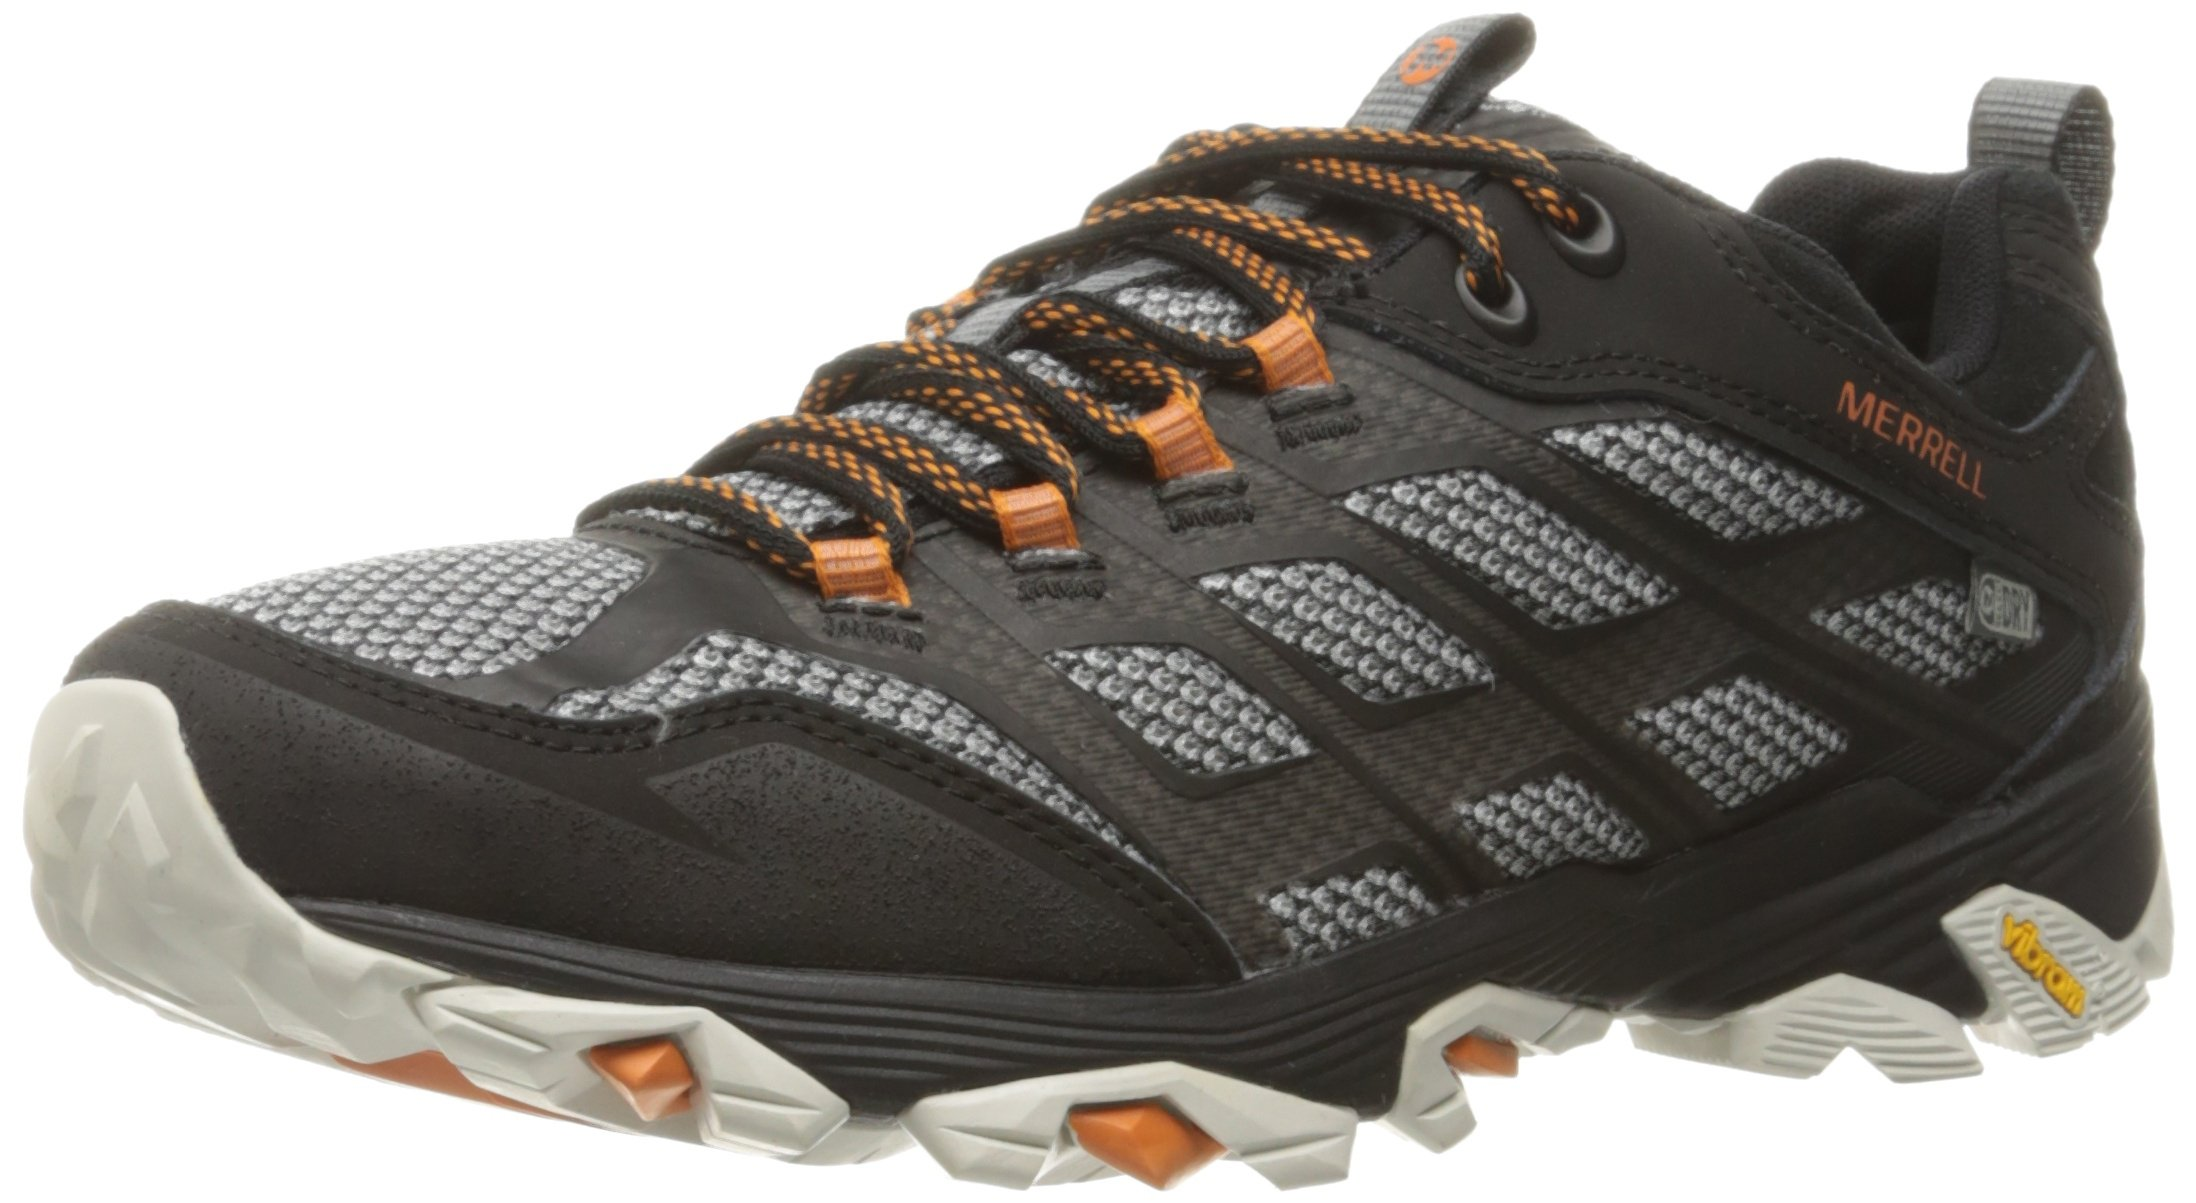 Merrell Men's Moab FST Waterproof Hiking Shoe, Black, 12 M US